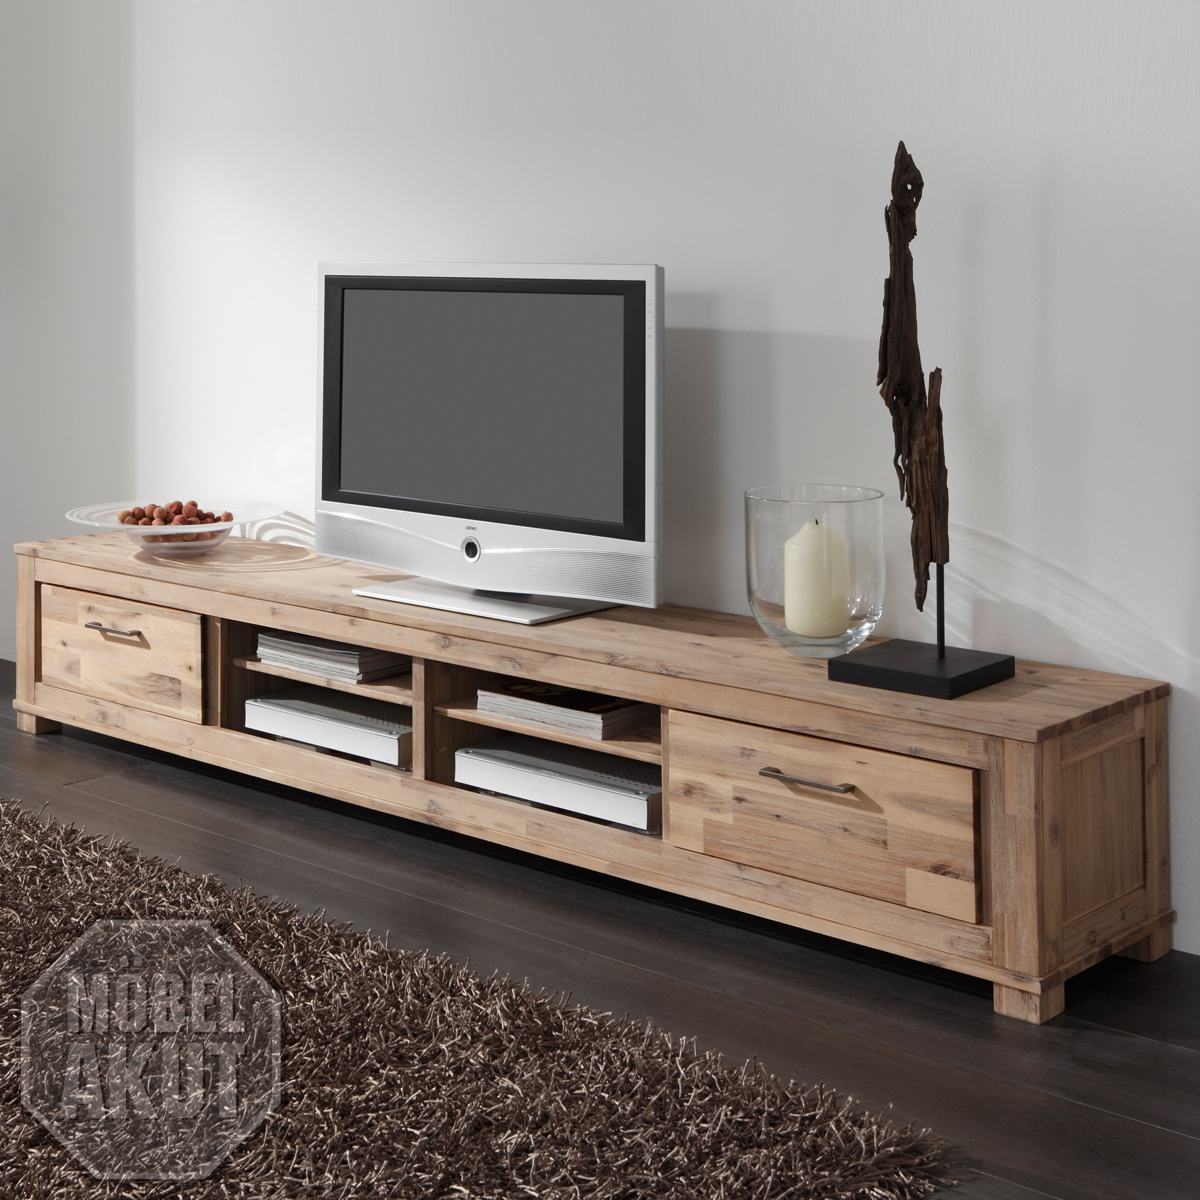 tv lowboard akazie die m bel f r die k che. Black Bedroom Furniture Sets. Home Design Ideas